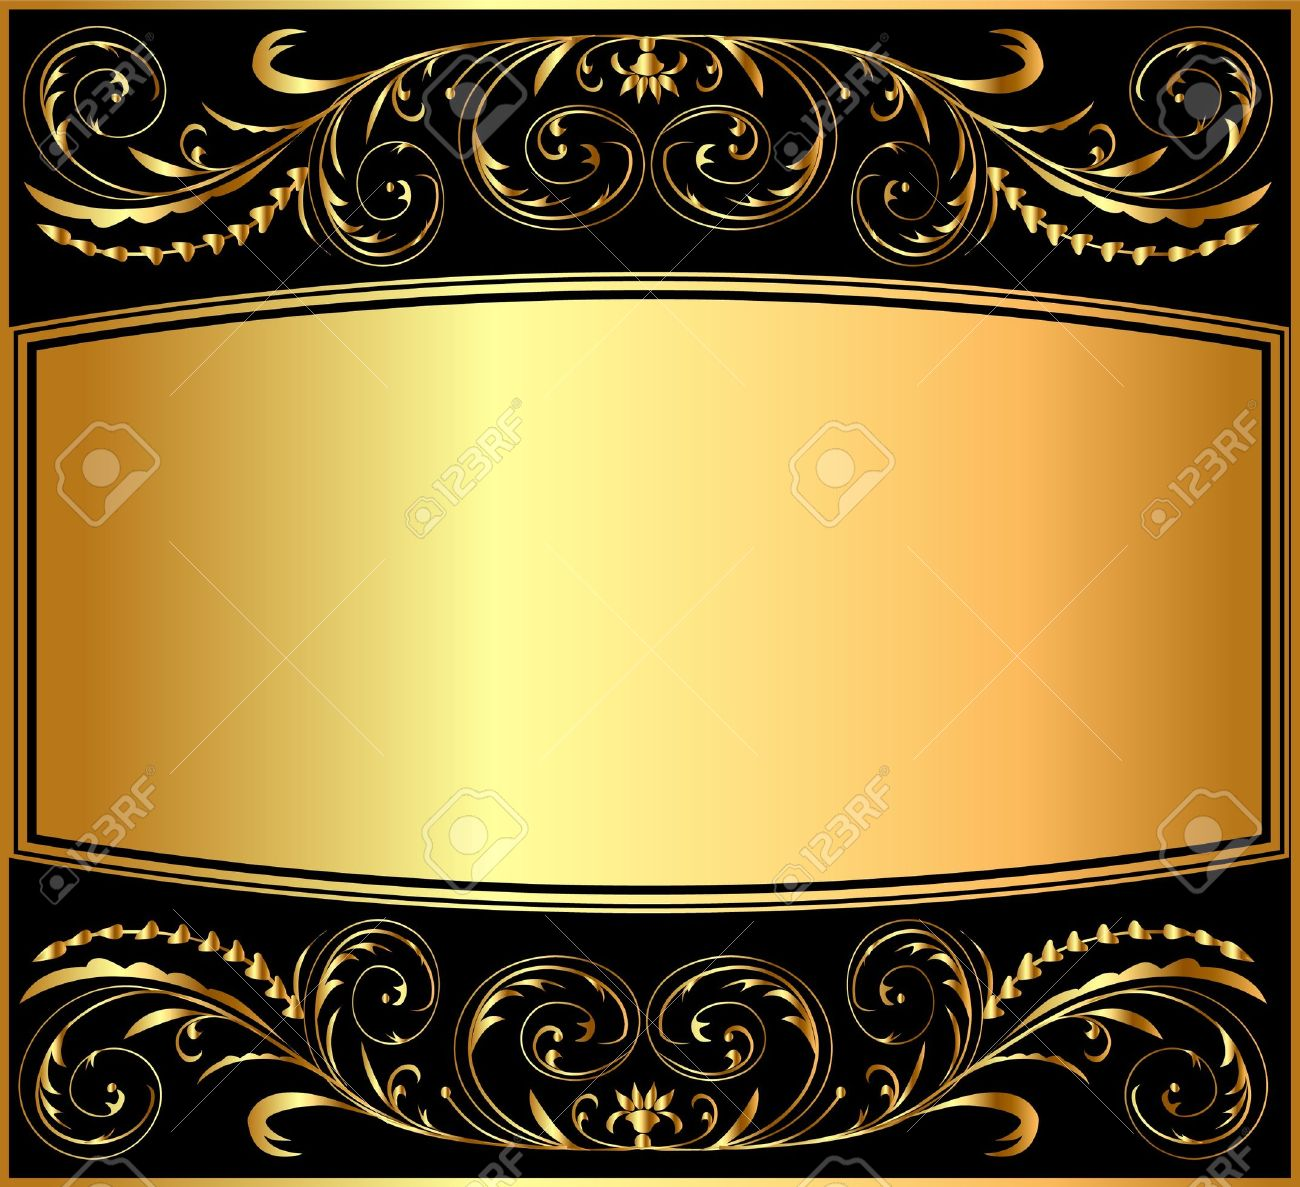 Gold background free vector download 45984 Free vector